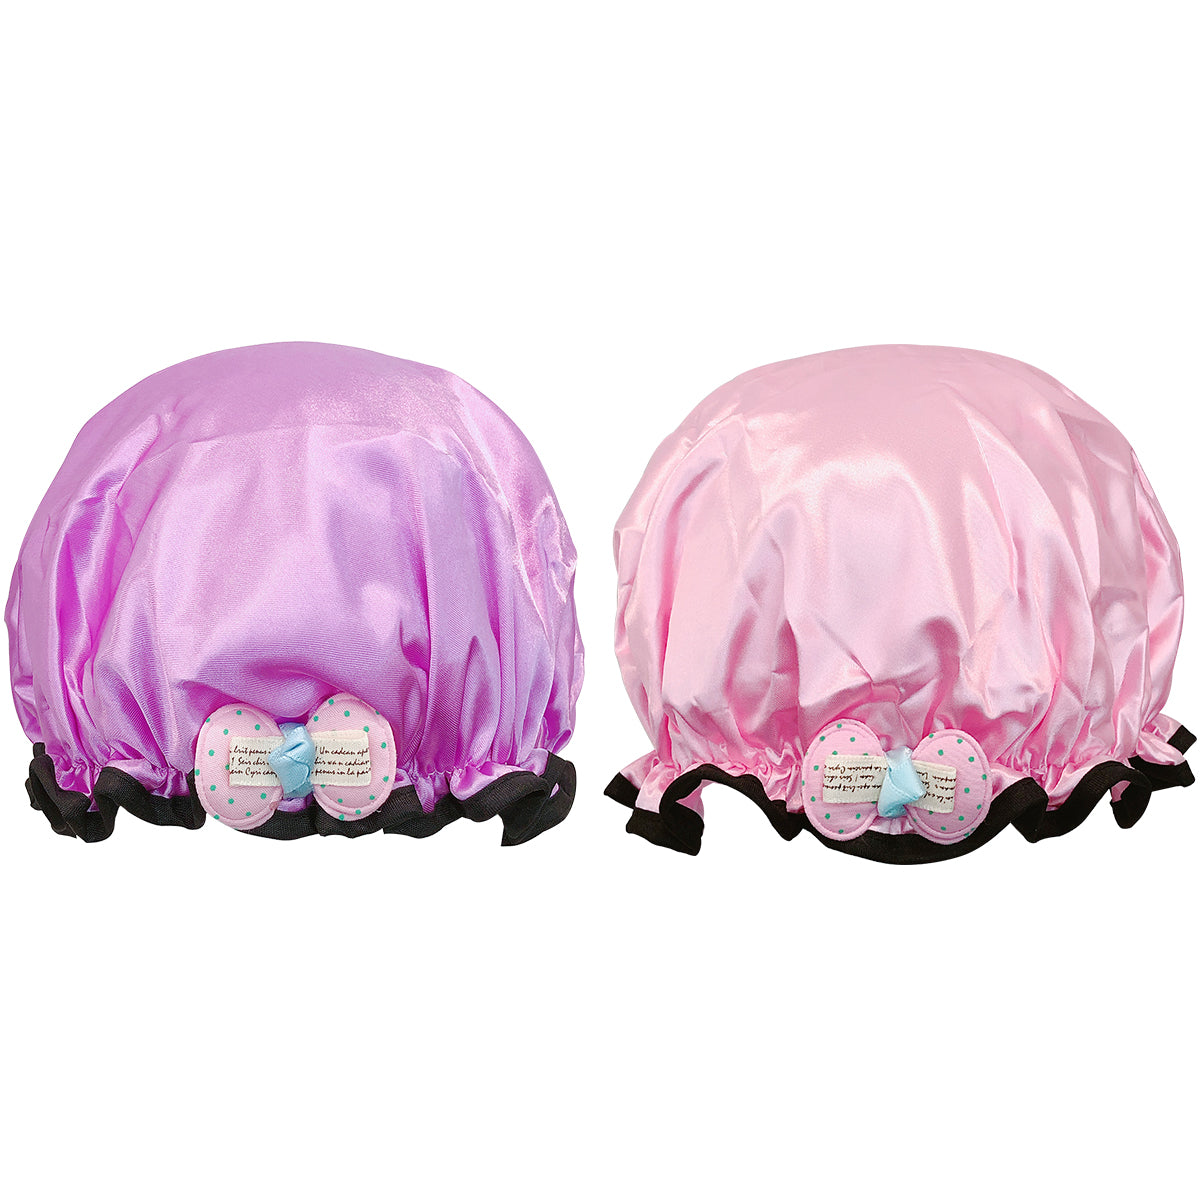 Wrapables® Fun and Novelty Double Layer Waterproof Shower Caps for Kids (Set of 2)